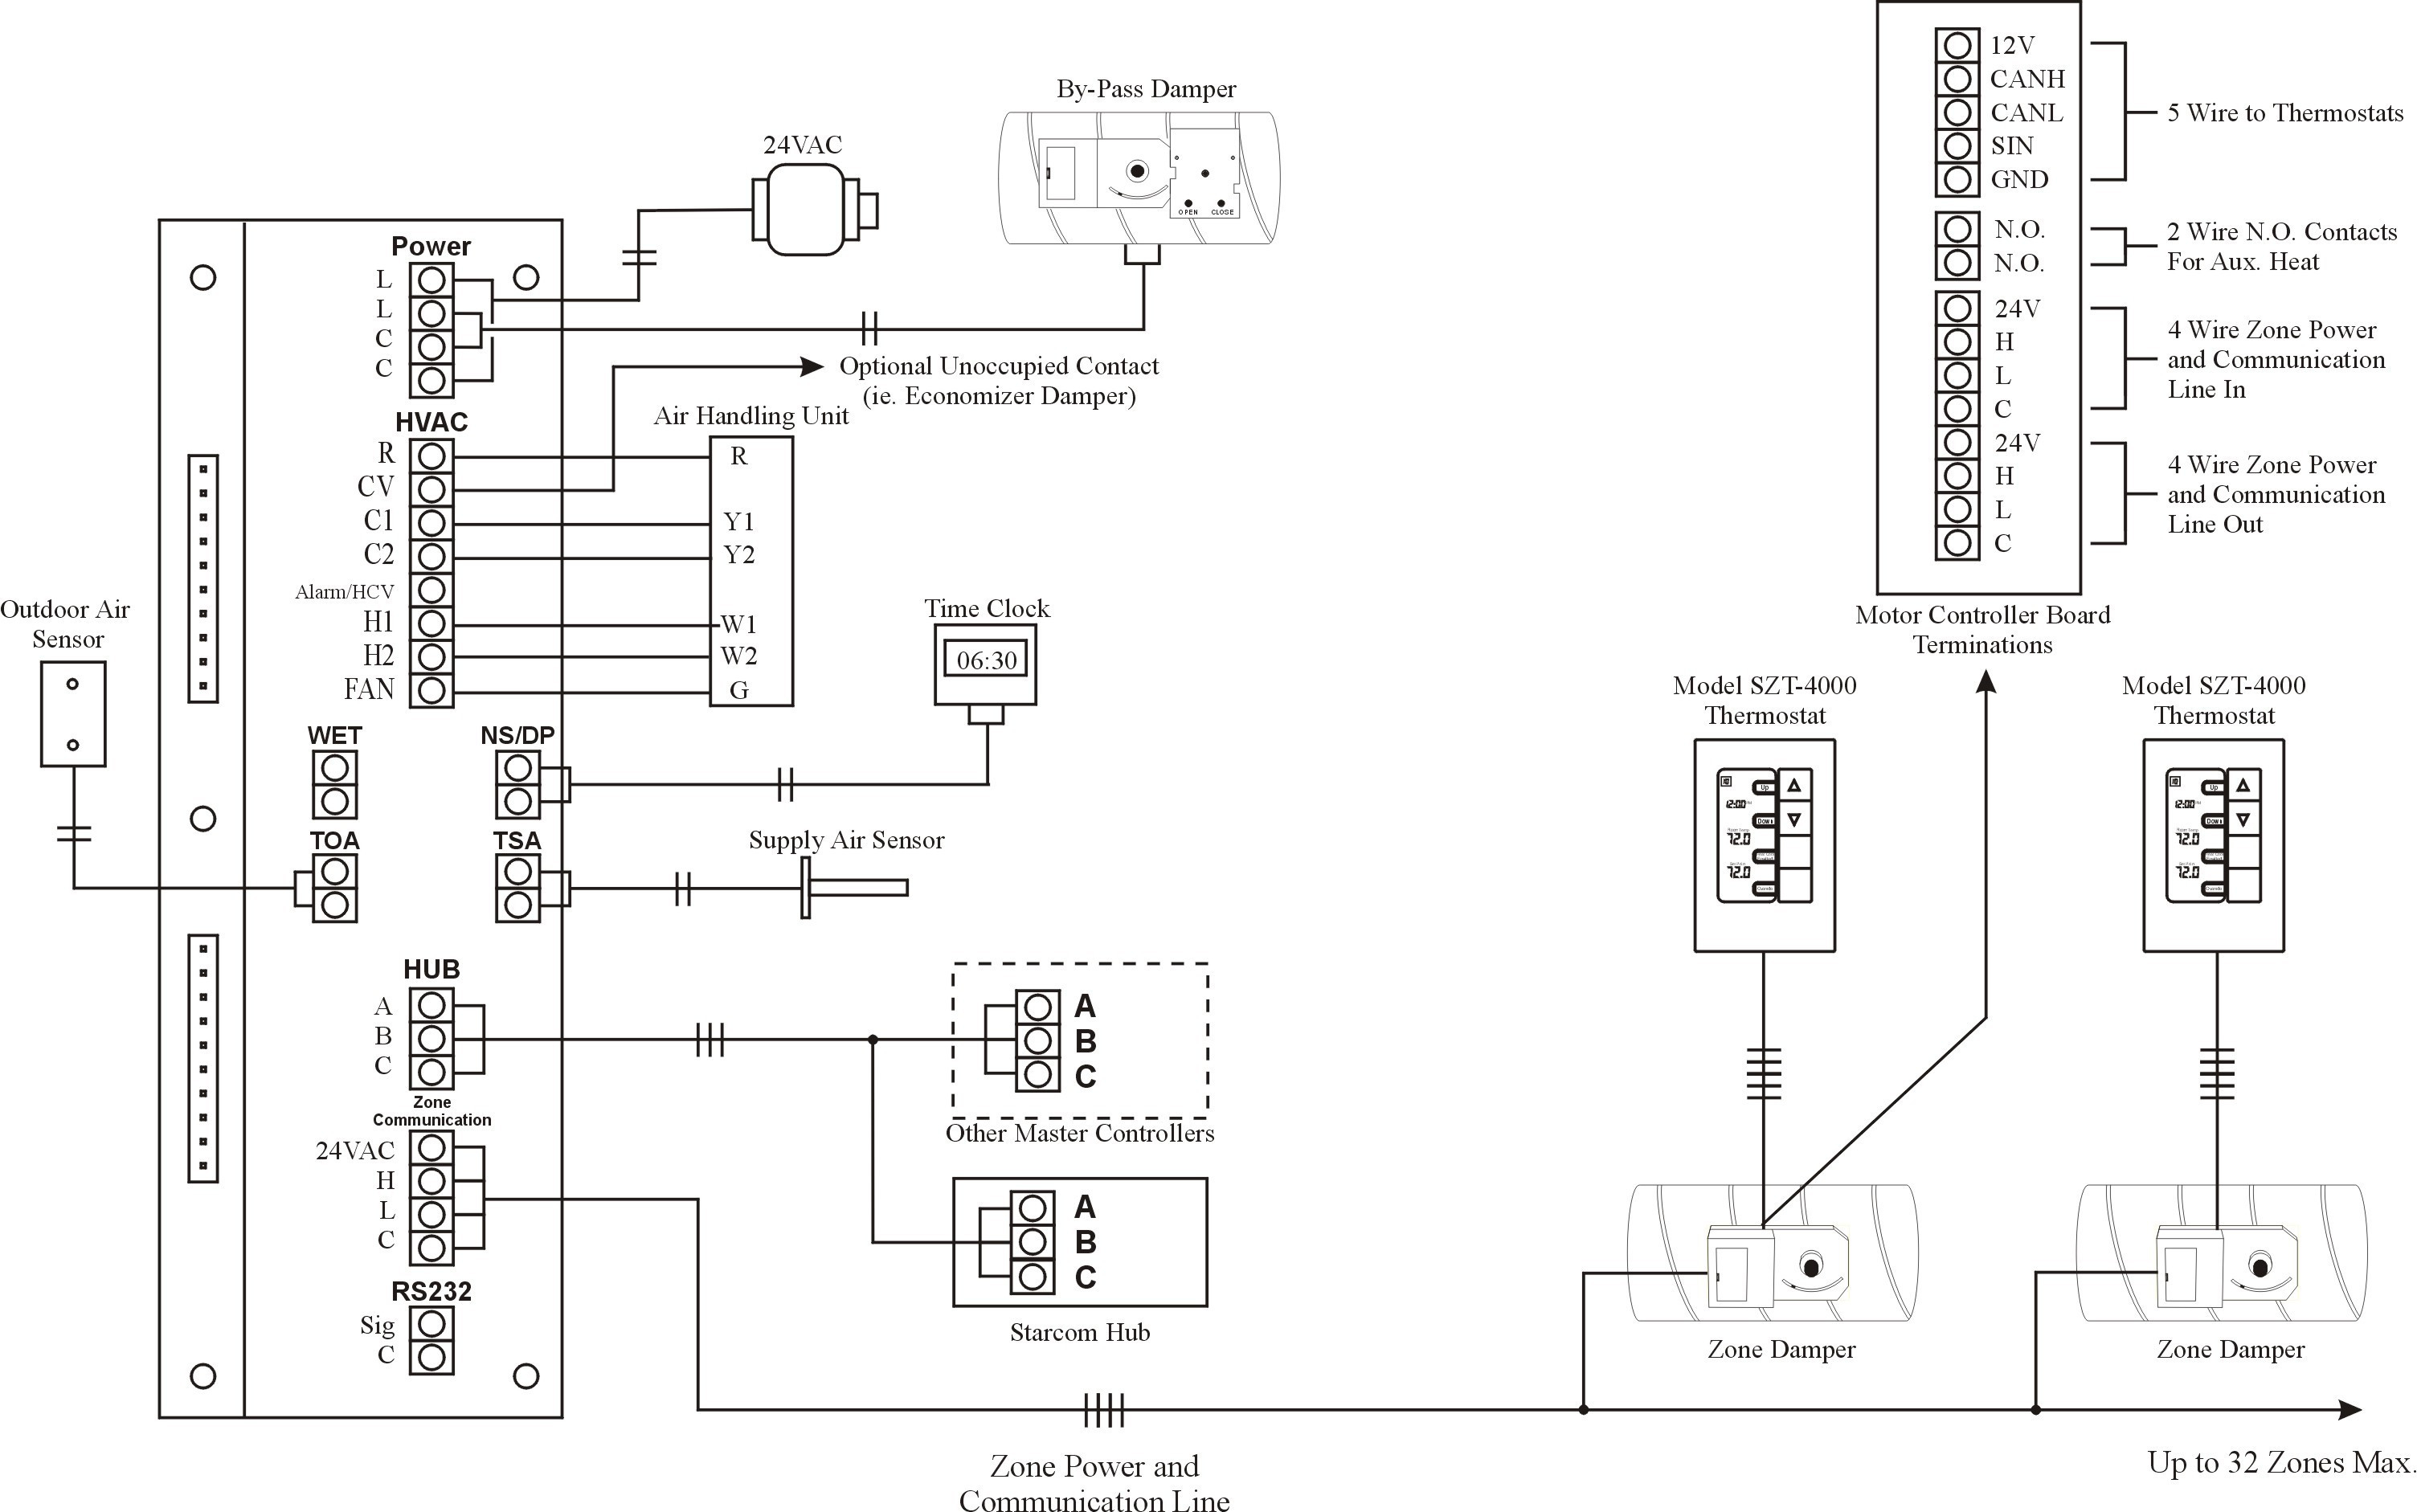 Ihc Wiring Diagrams | Wiring Schematic Diagram - 9.glamfizz.de on